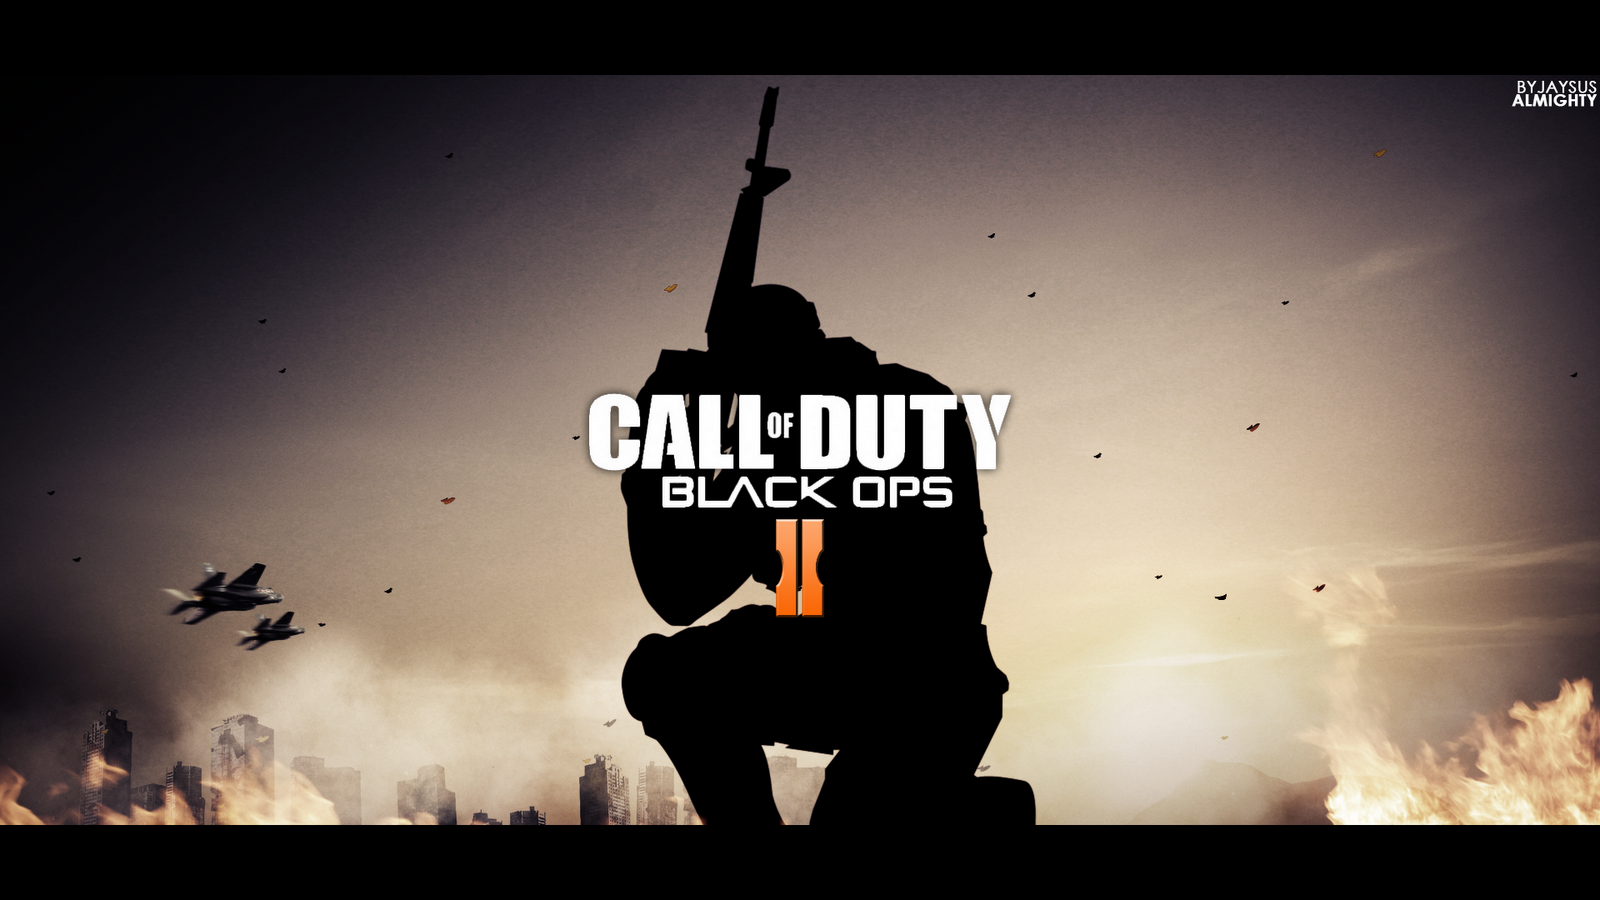 HD WALLPAPERS: Call of Duty Black ops 2 HD Wallpapers